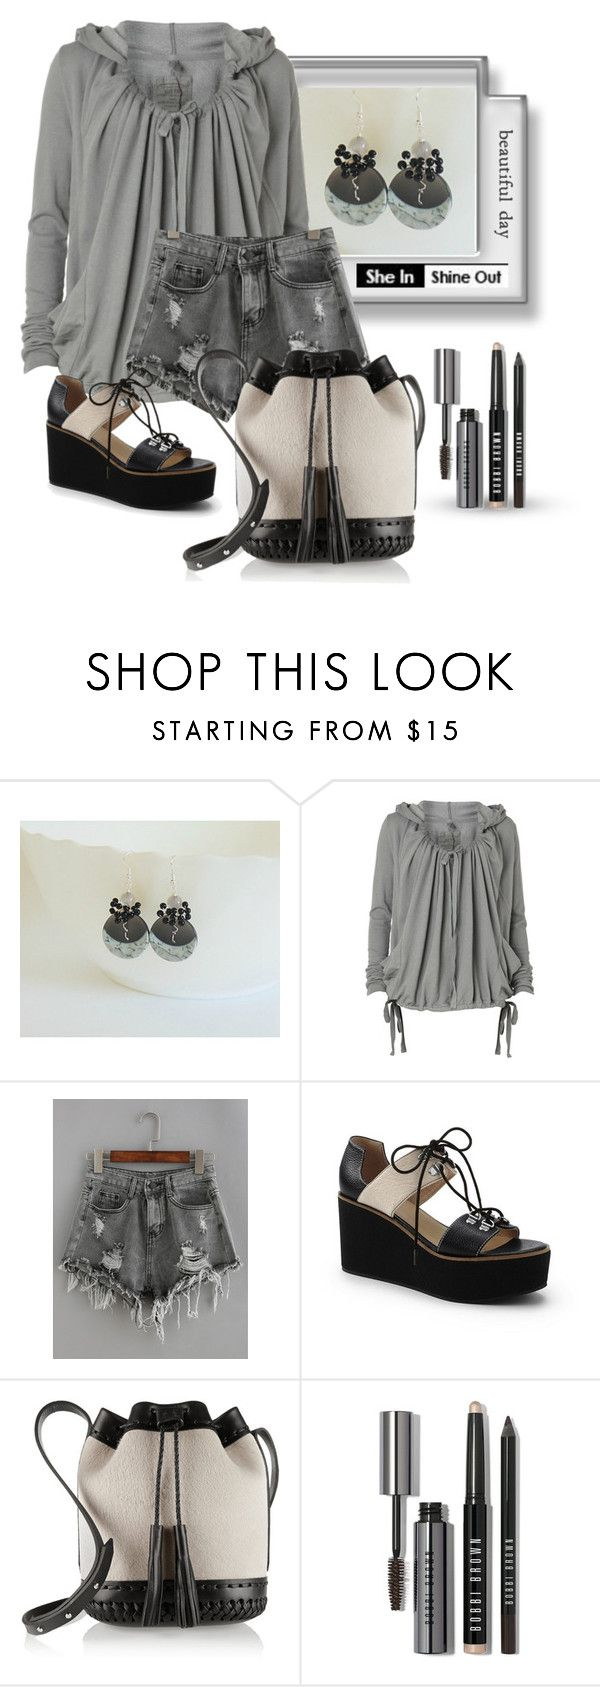 """WIN SHEIN GREY SHORTS"" by styledonna on Polyvore featuring moda, AllSaints, Lands' End, Wendy Nichol i Bobbi Brown Cosmetics"